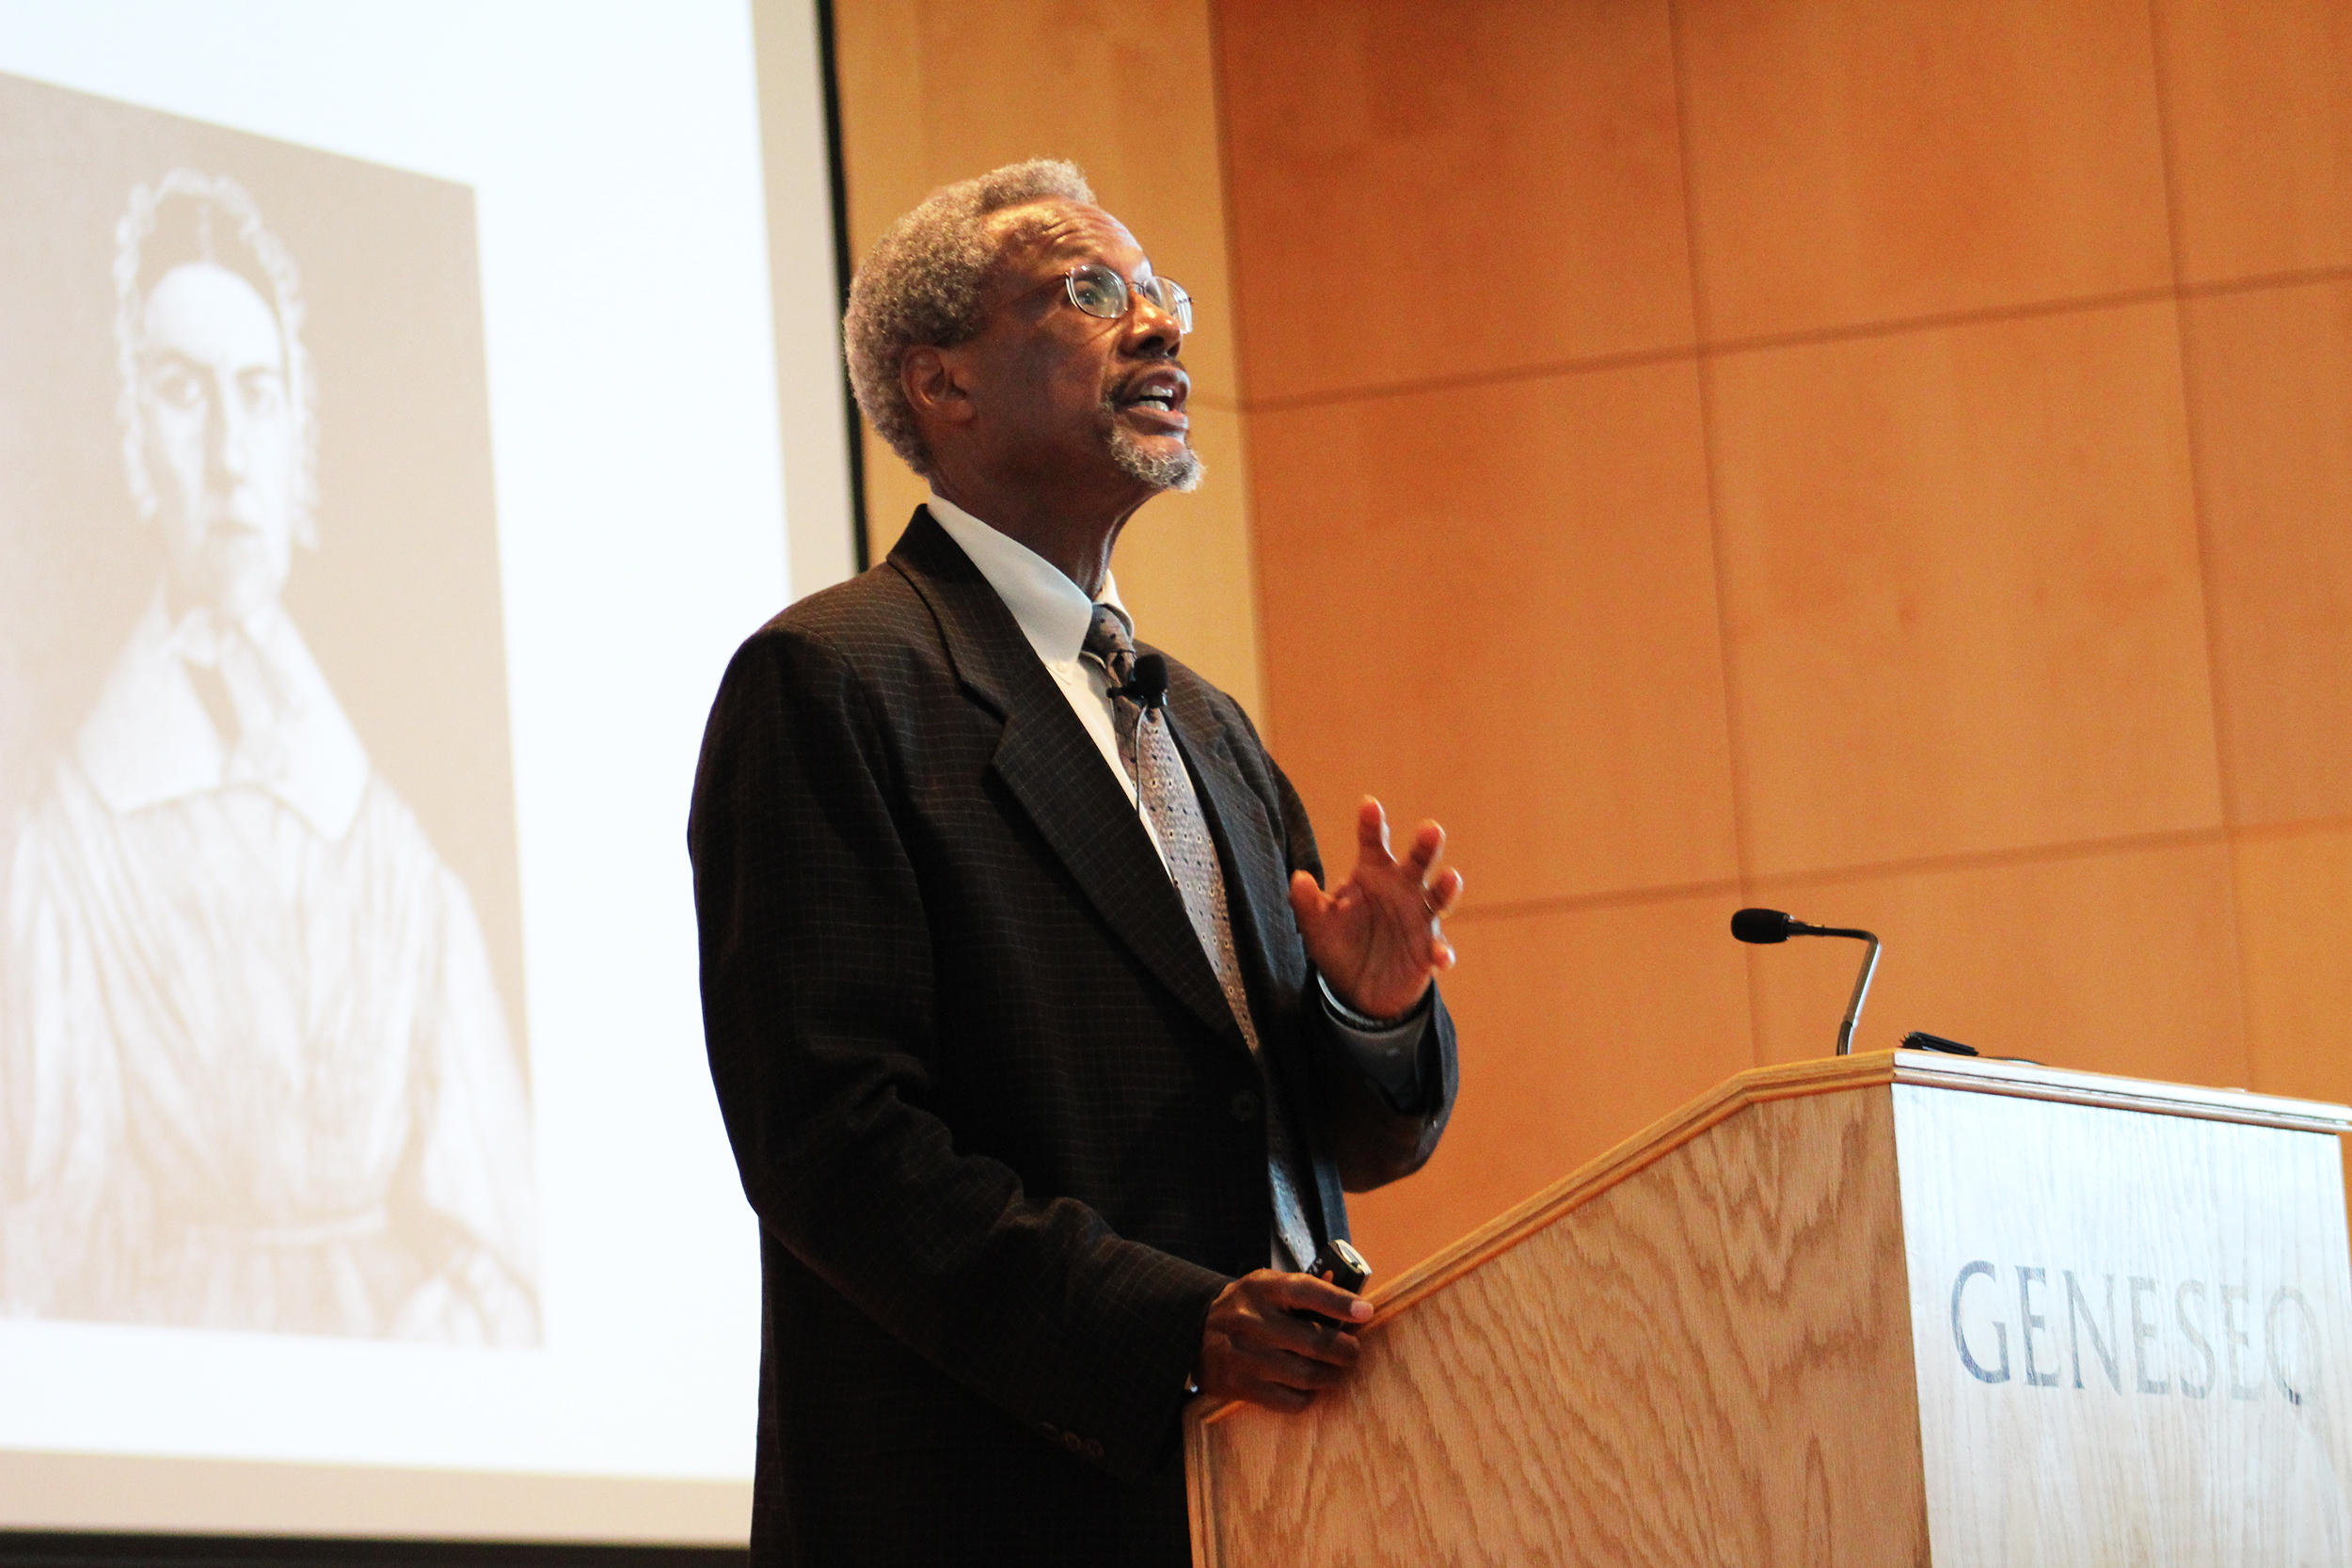 Renown historian Spencer Crew (pictured above) delivered an inspiring lecture on Friday Sept. 28 in Doty Hall. Crew is the former director of the Smithsonian National Museum of American History and has done extensive research on the Underground Railroad (Catherine White/Editor-in-chief).